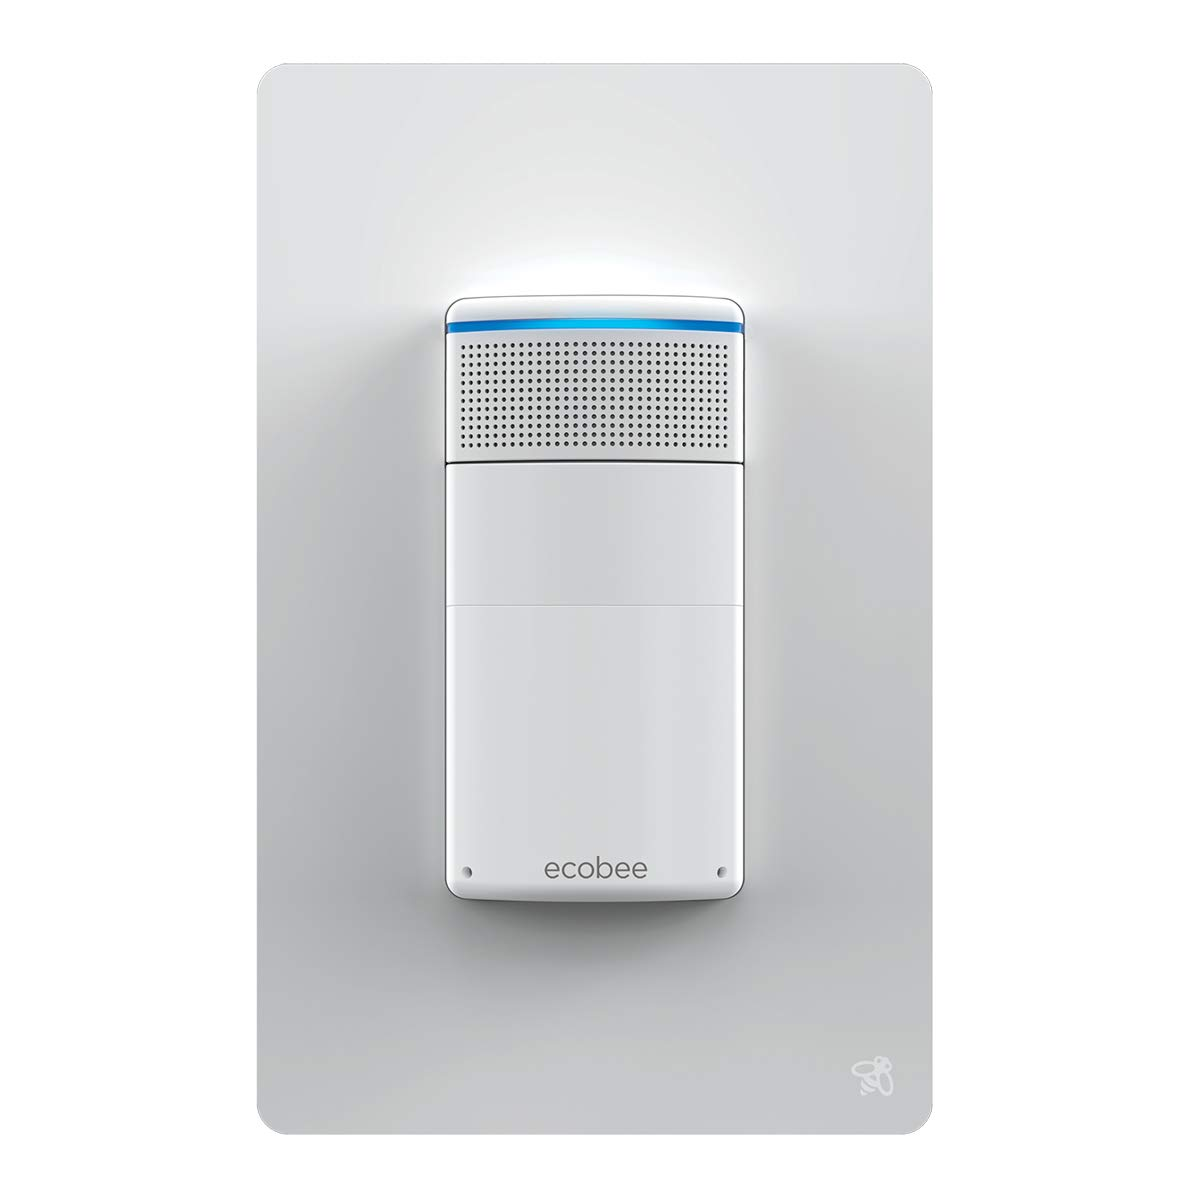 ecobee Switch+ Smart Light Switch With Alexa Built-in